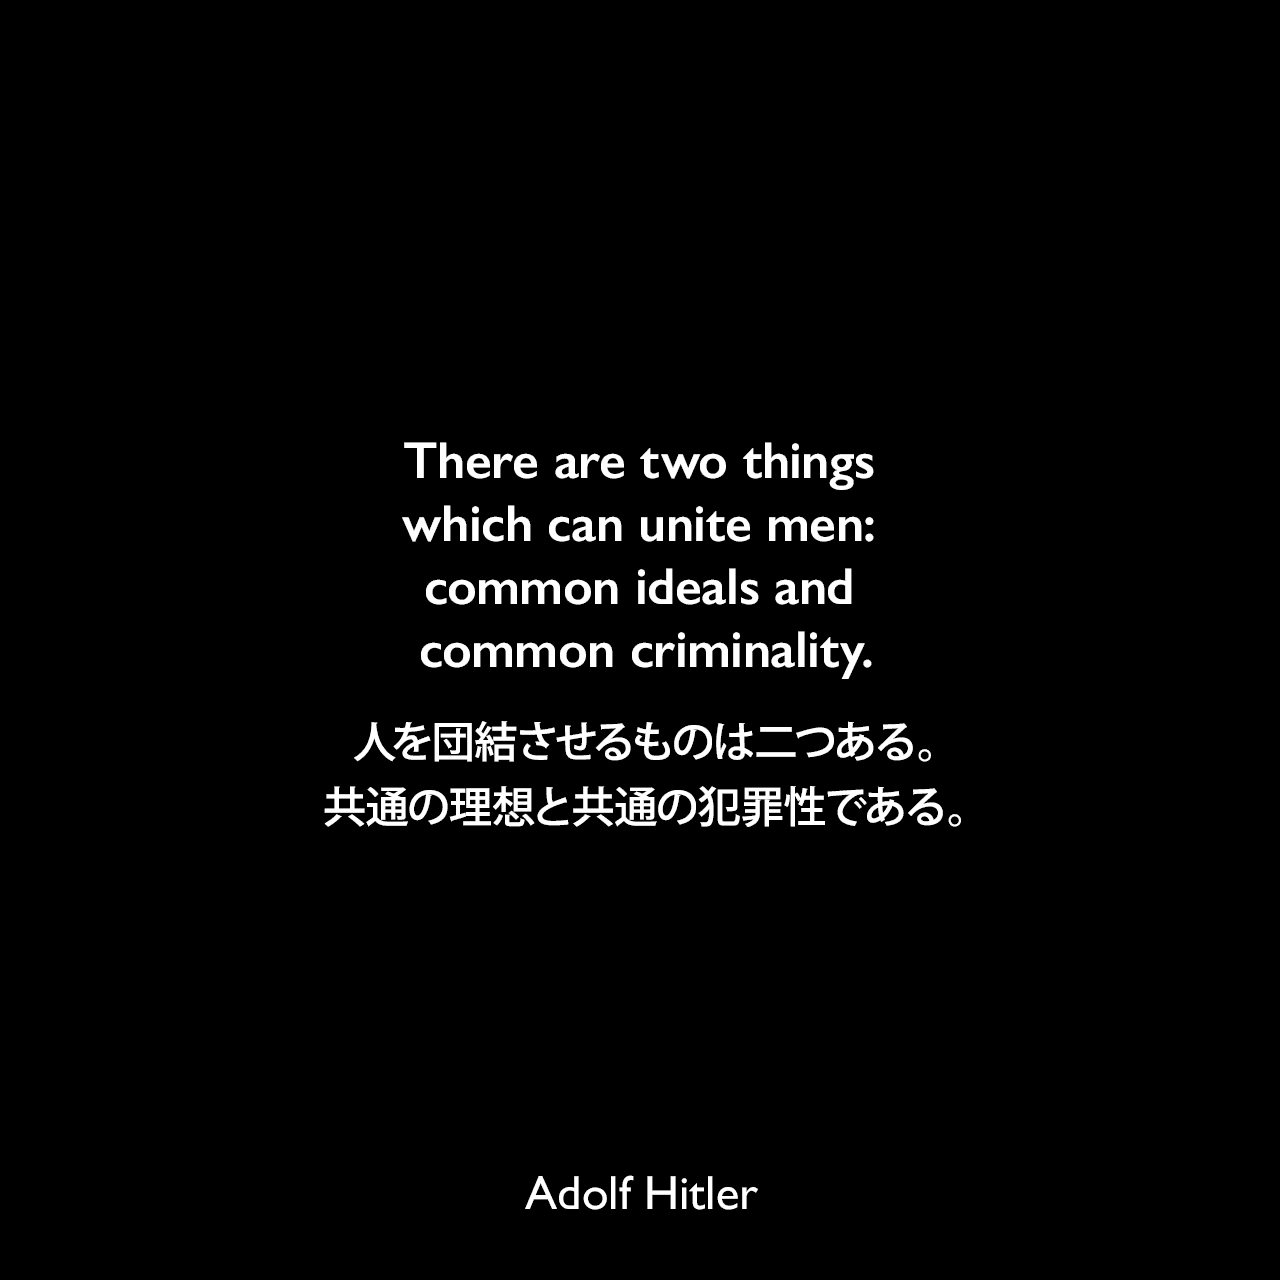 There are two things which can unite men: common ideals and common criminality.人を団結させるものは二つある。共通の理想と共通の犯罪性である。- 1923年8月1日ミュンヘンでのスピーチよりAdolf Hitler